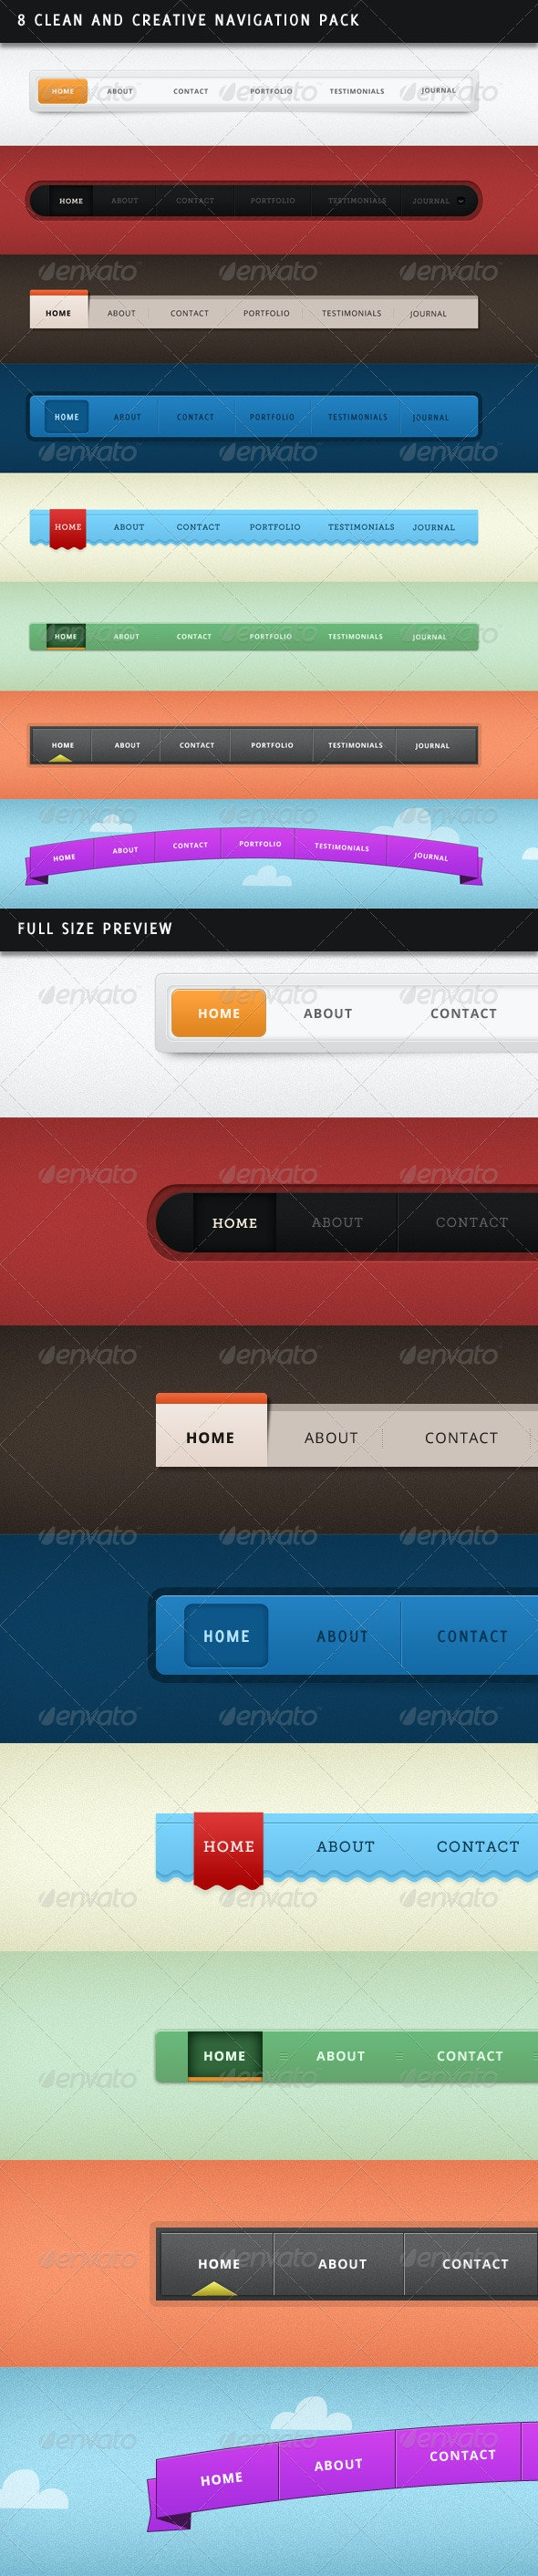 8 Clean and Creative Navigation Pack - Navigation Bars Web Elements